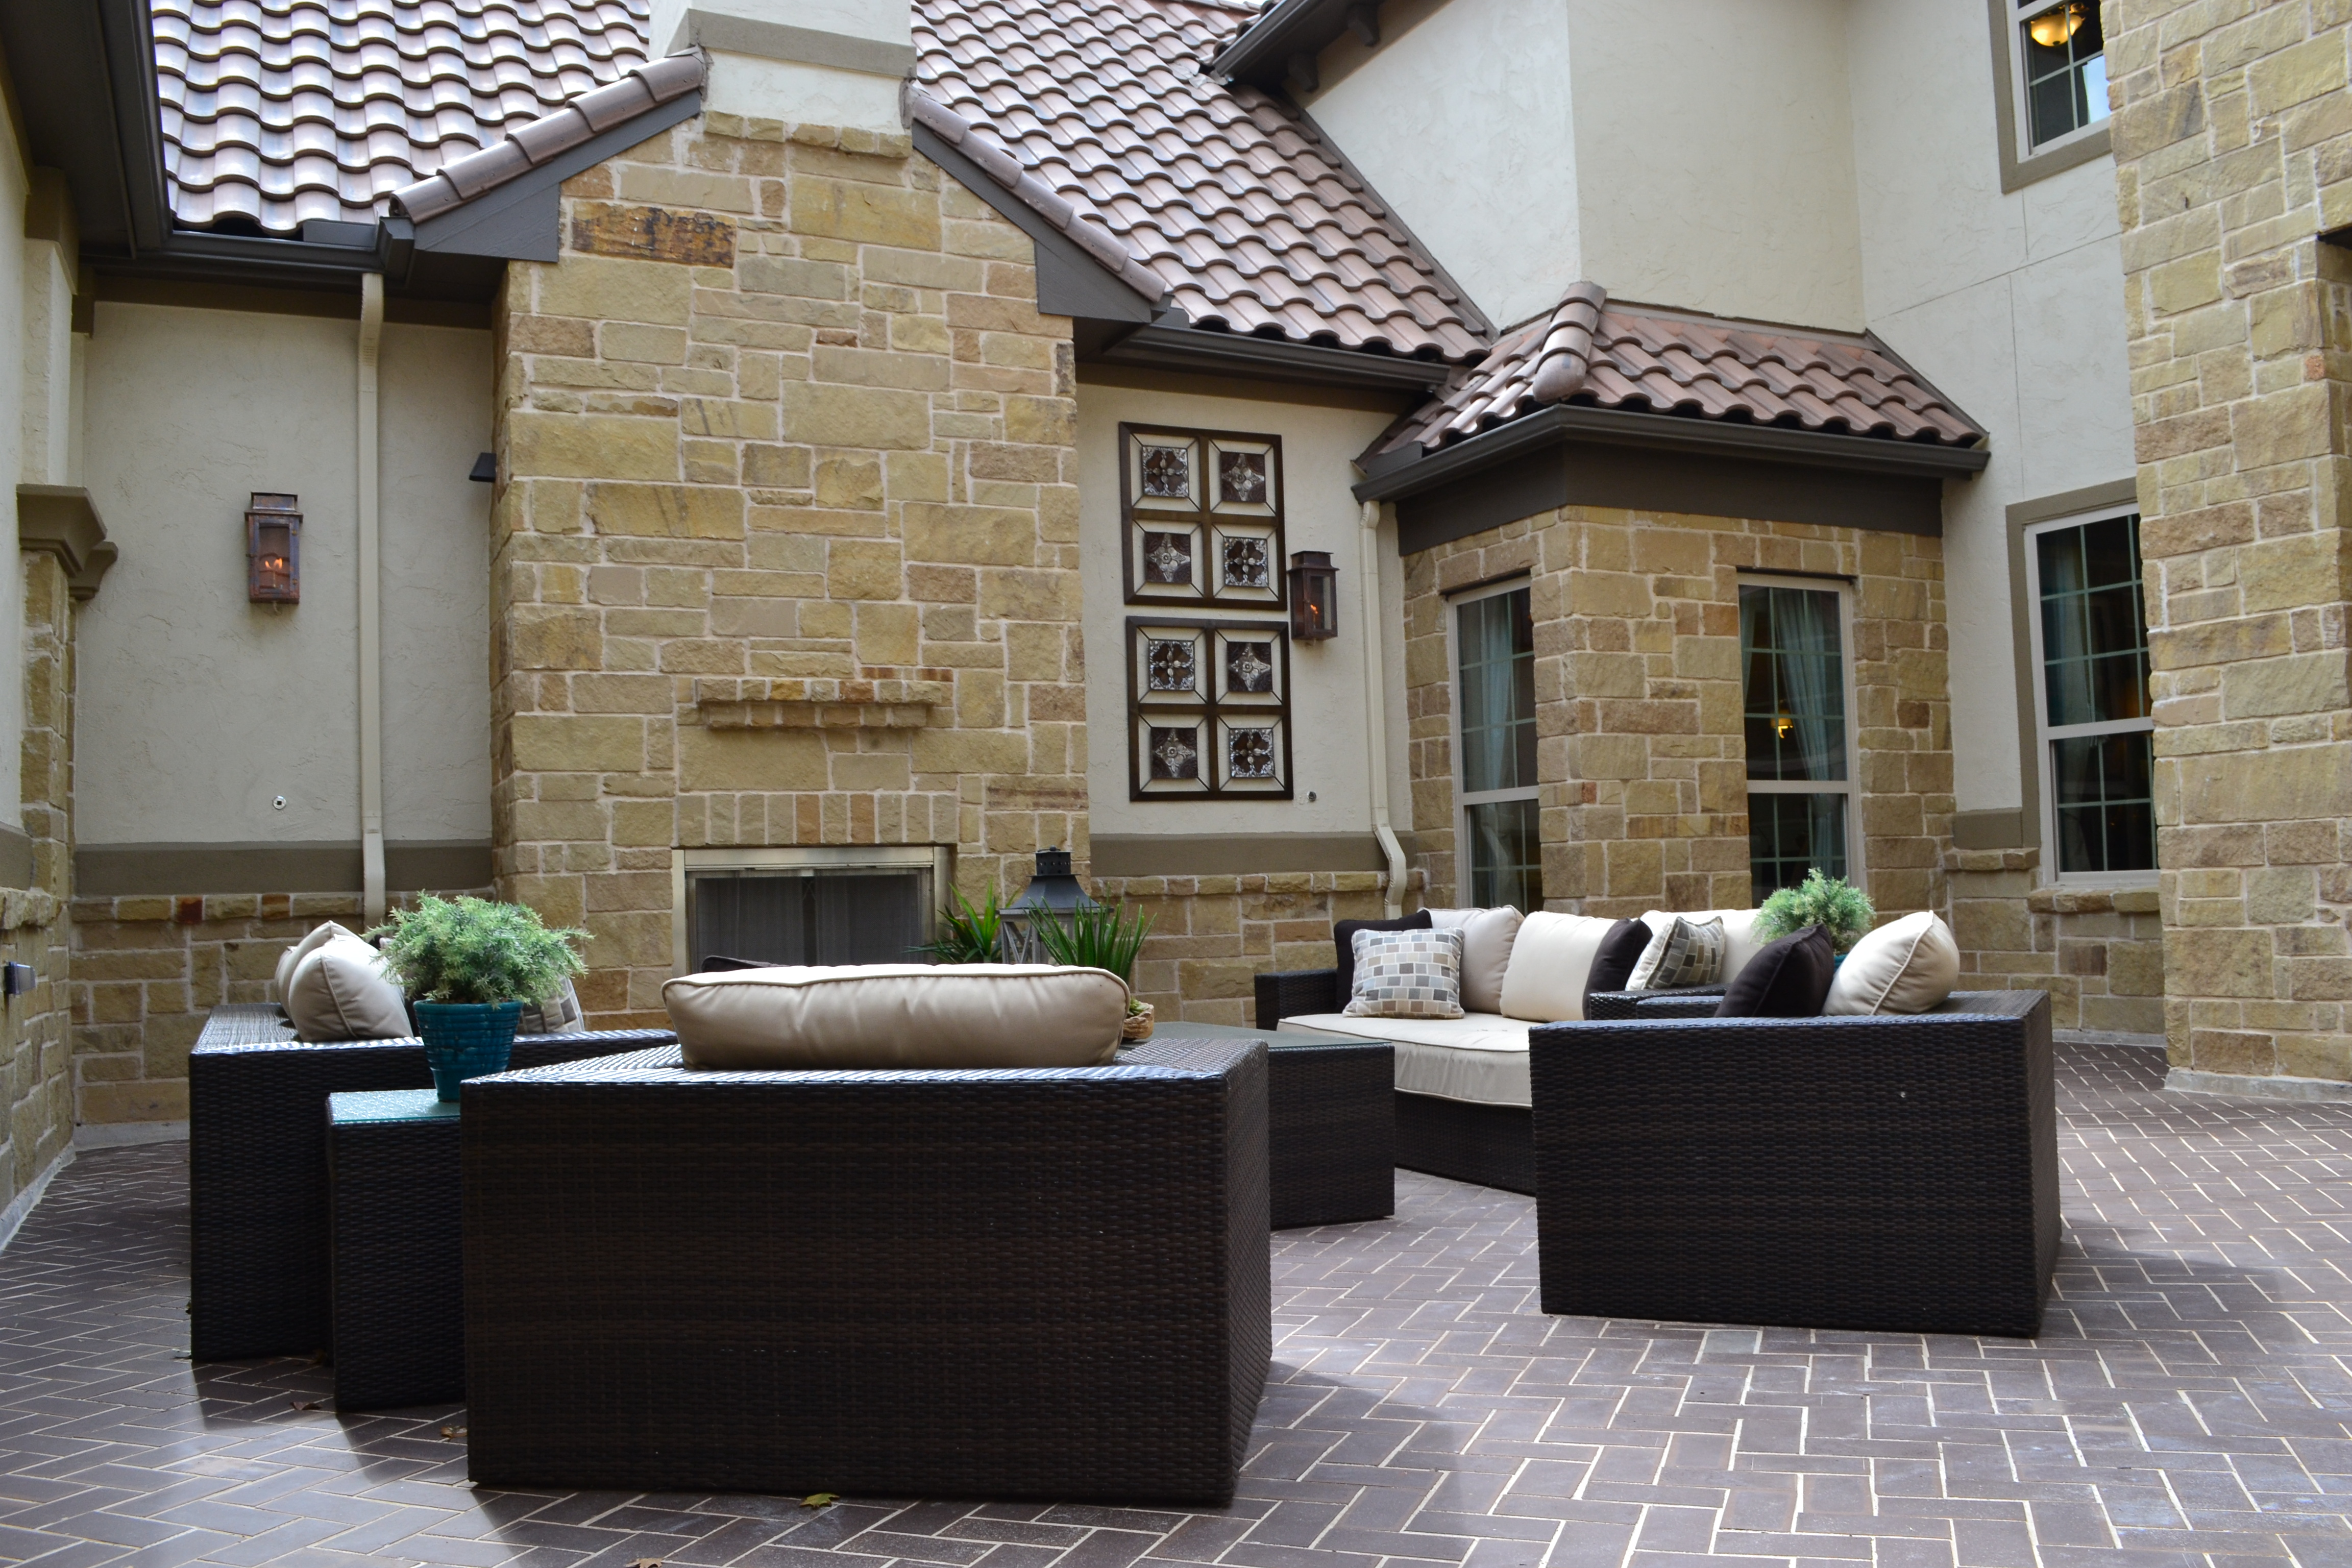 Tumbleweed Tan Sawn Chop Legends Stone Natural Stone